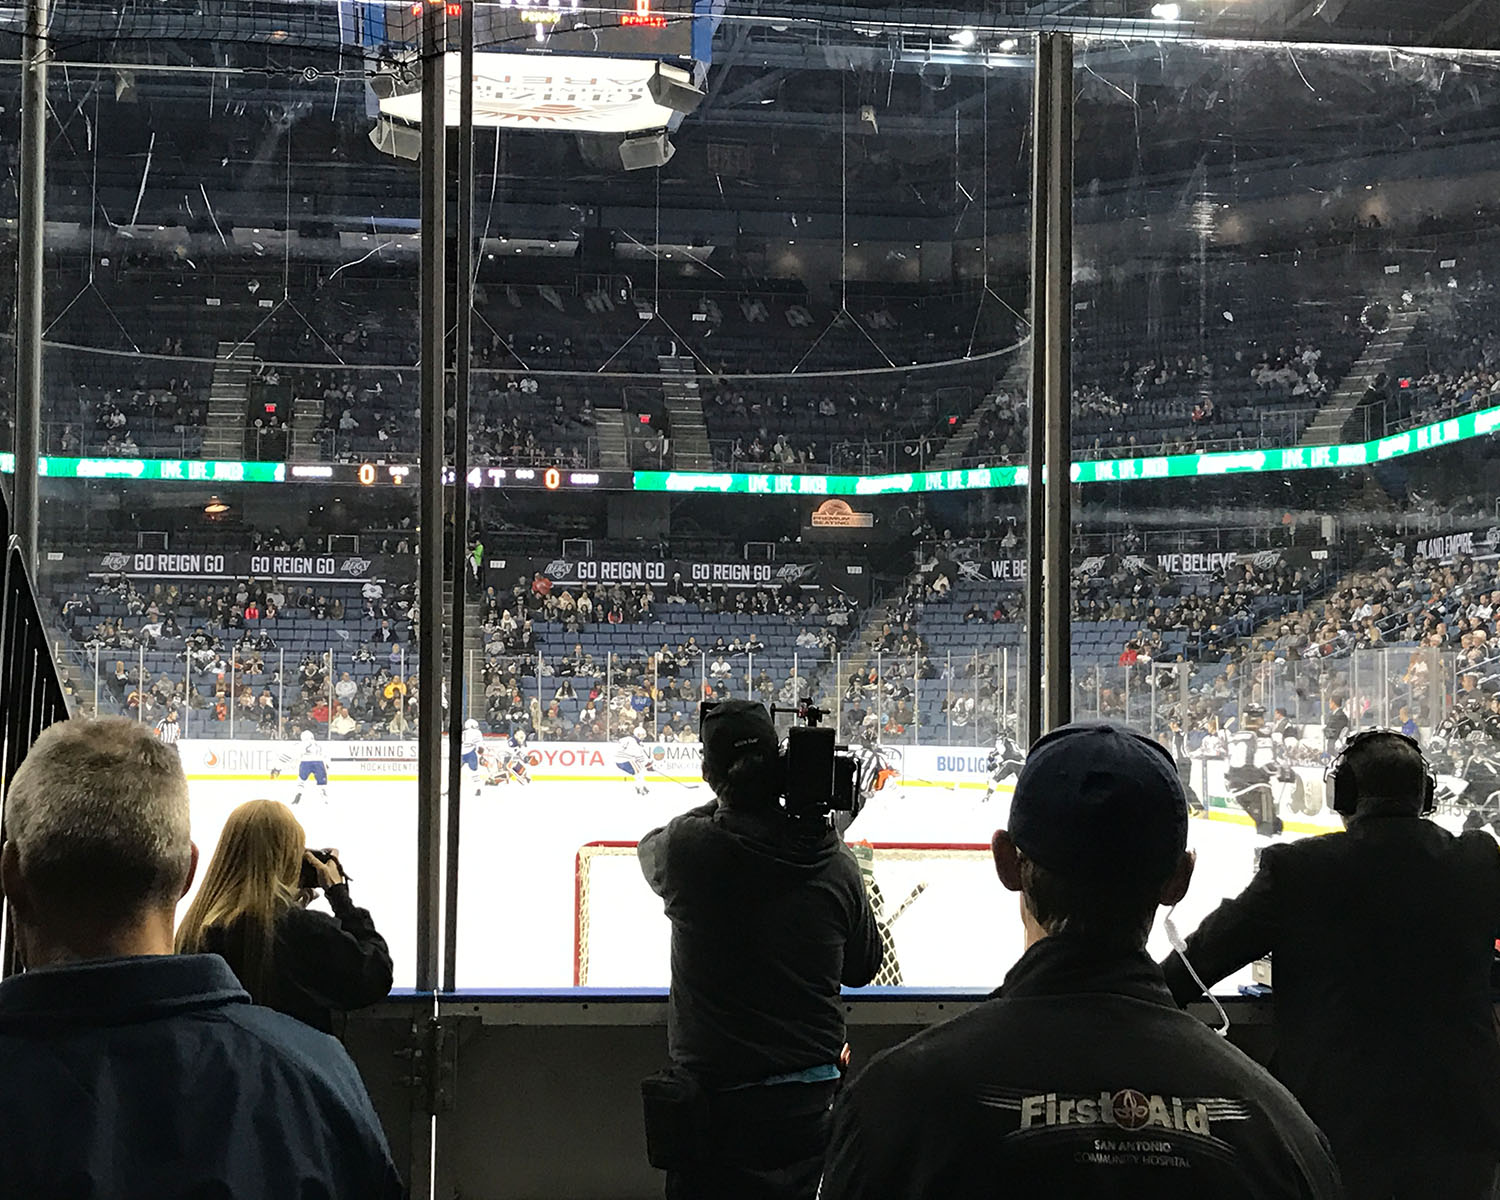 Filming a hockey game